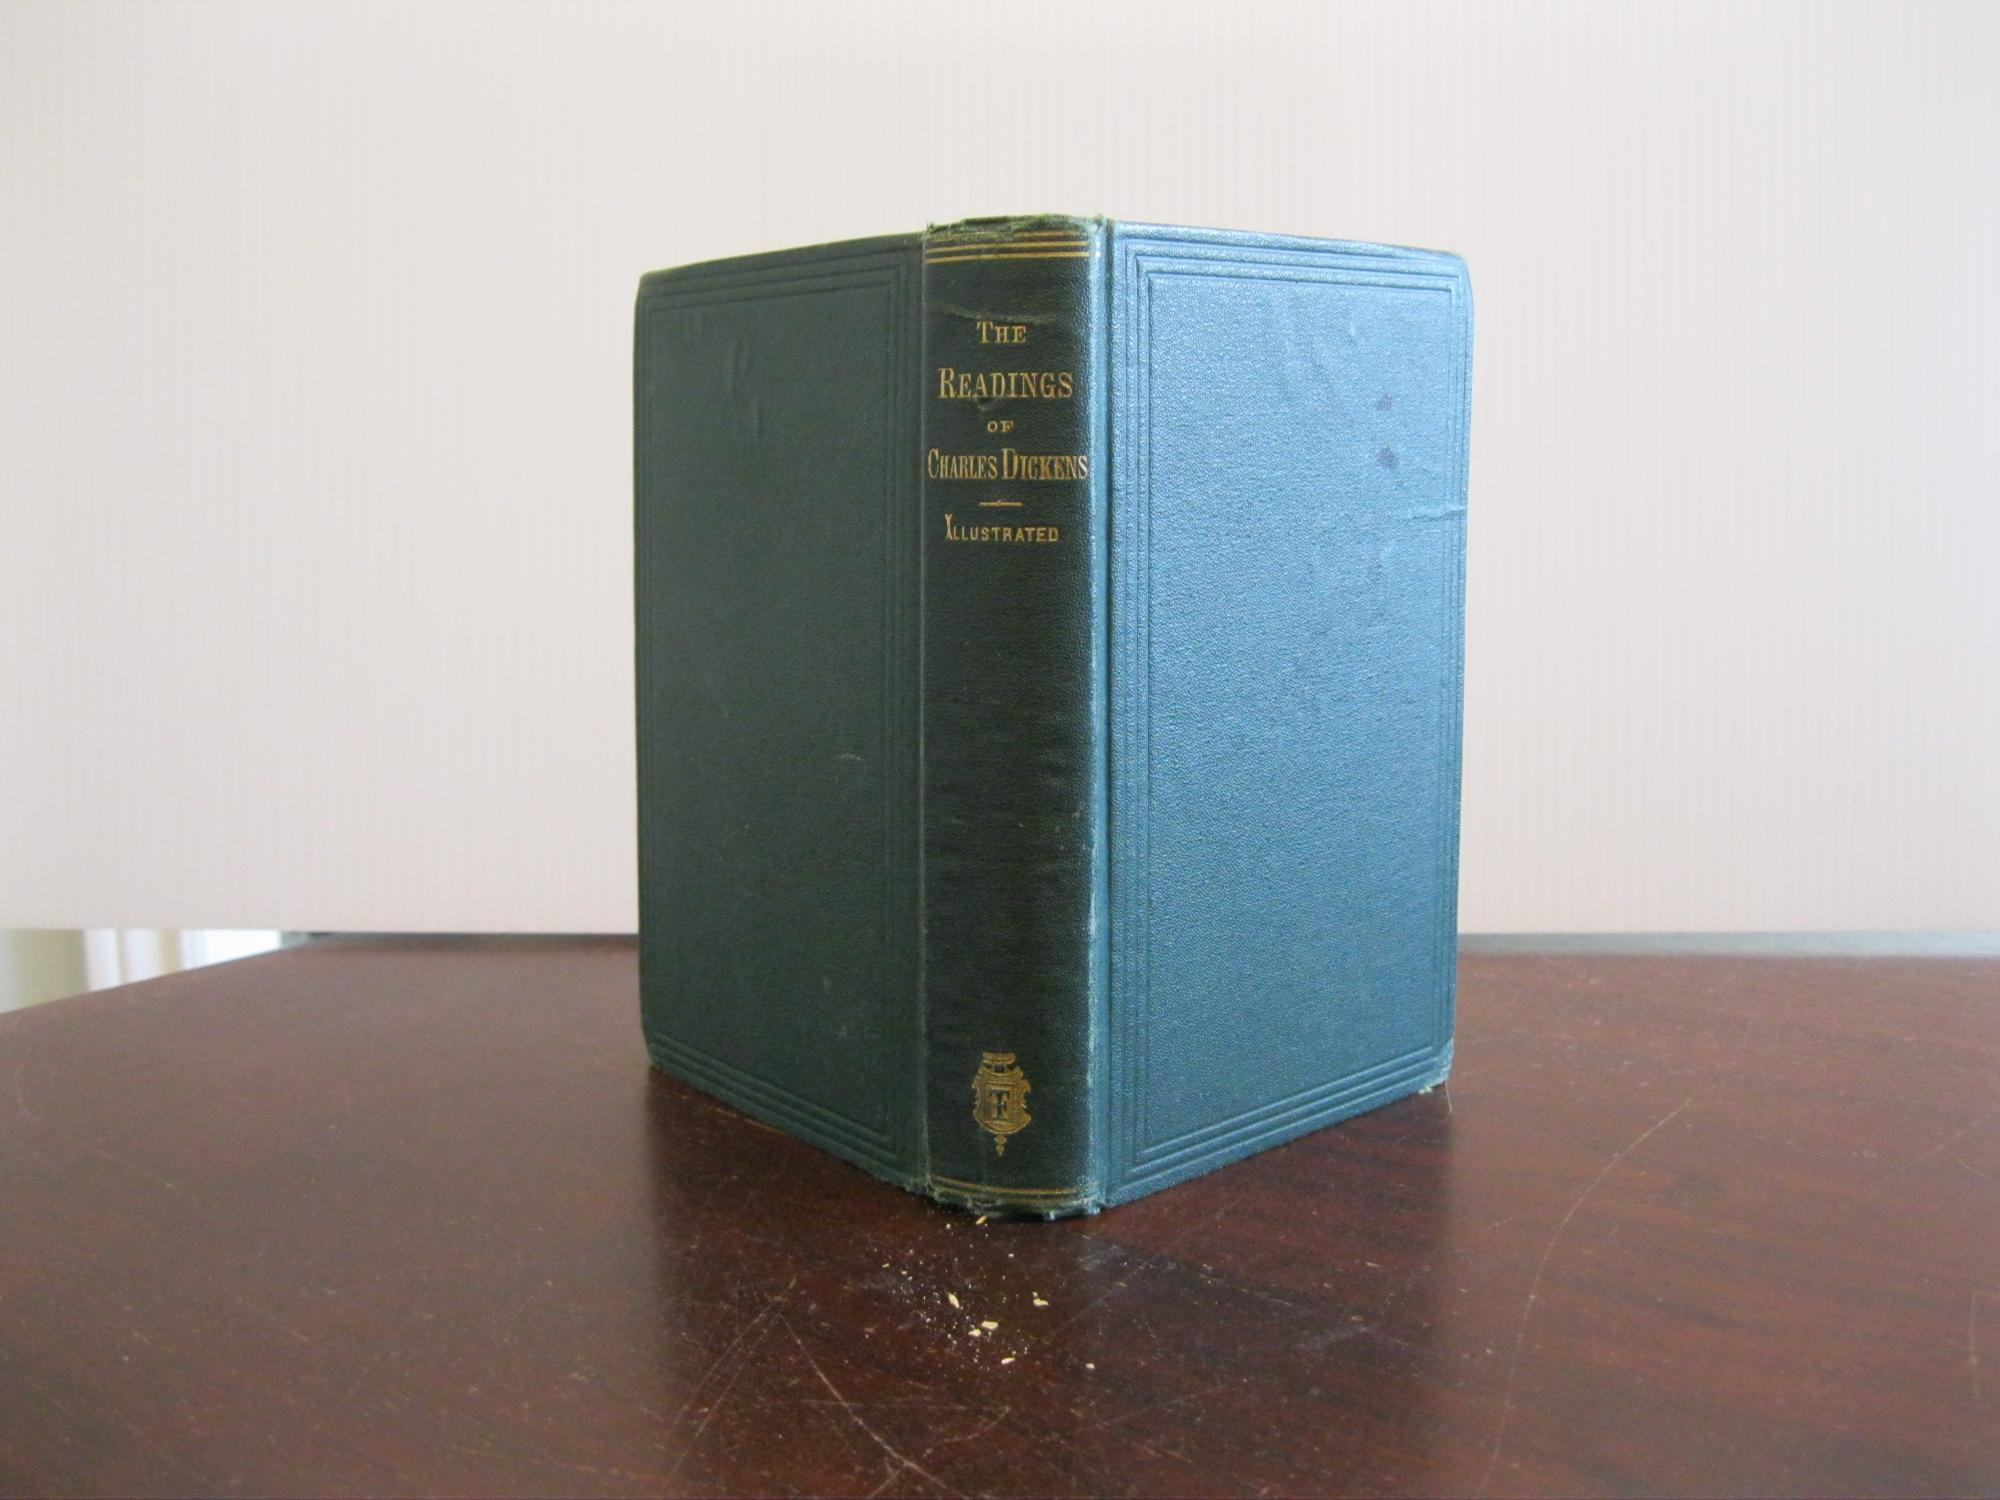 THE_READINGS_OF_MR_CHARLES_DICKENS_AS_CONDENSED_BY_HIMSELF_With_Original_Illustrations_DICKENS_CHARLES_Very_Good_Hardcover